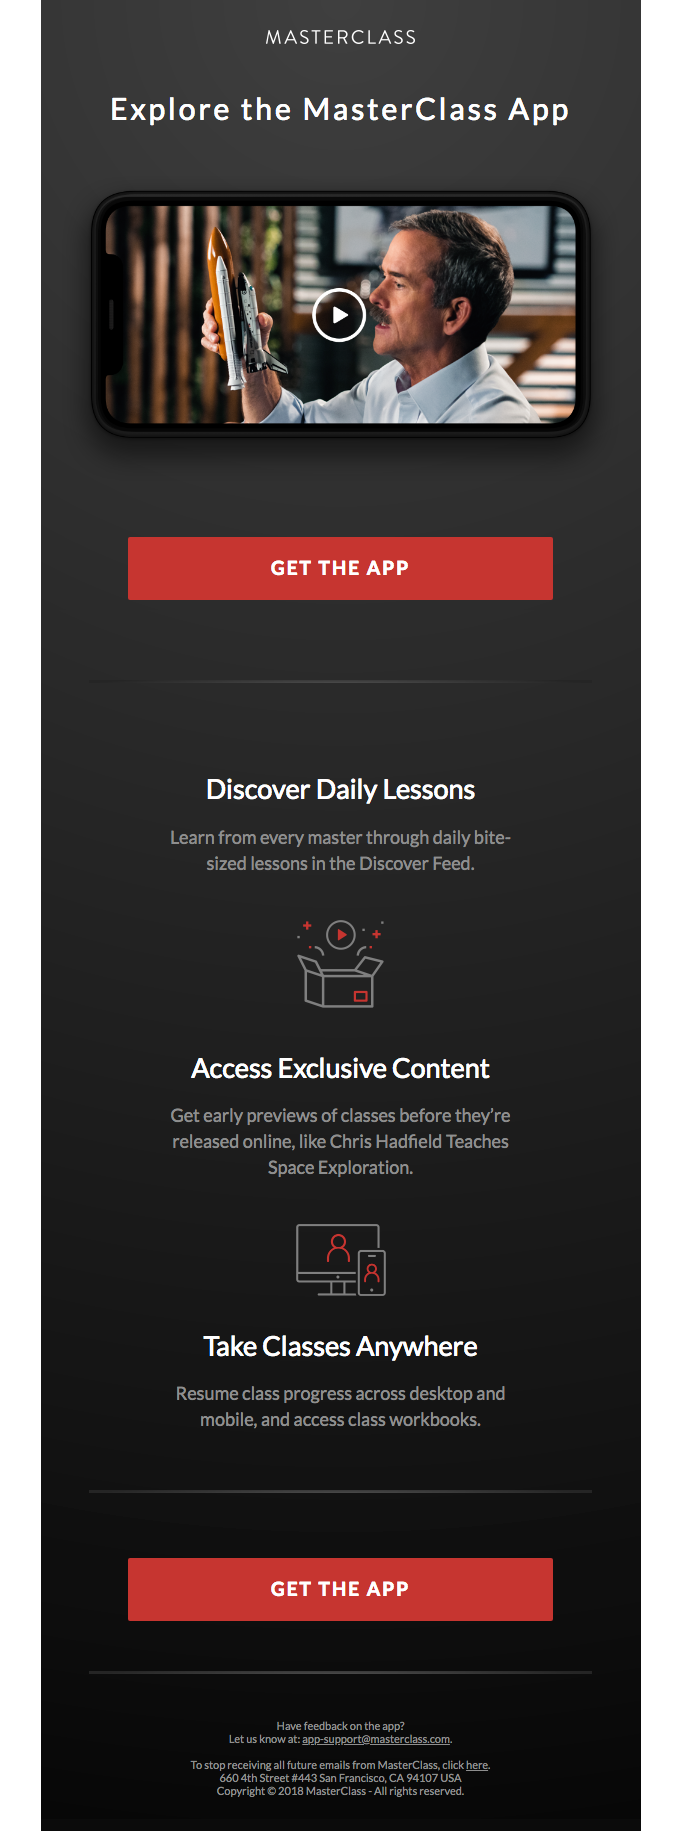 Three reasons to love our new app